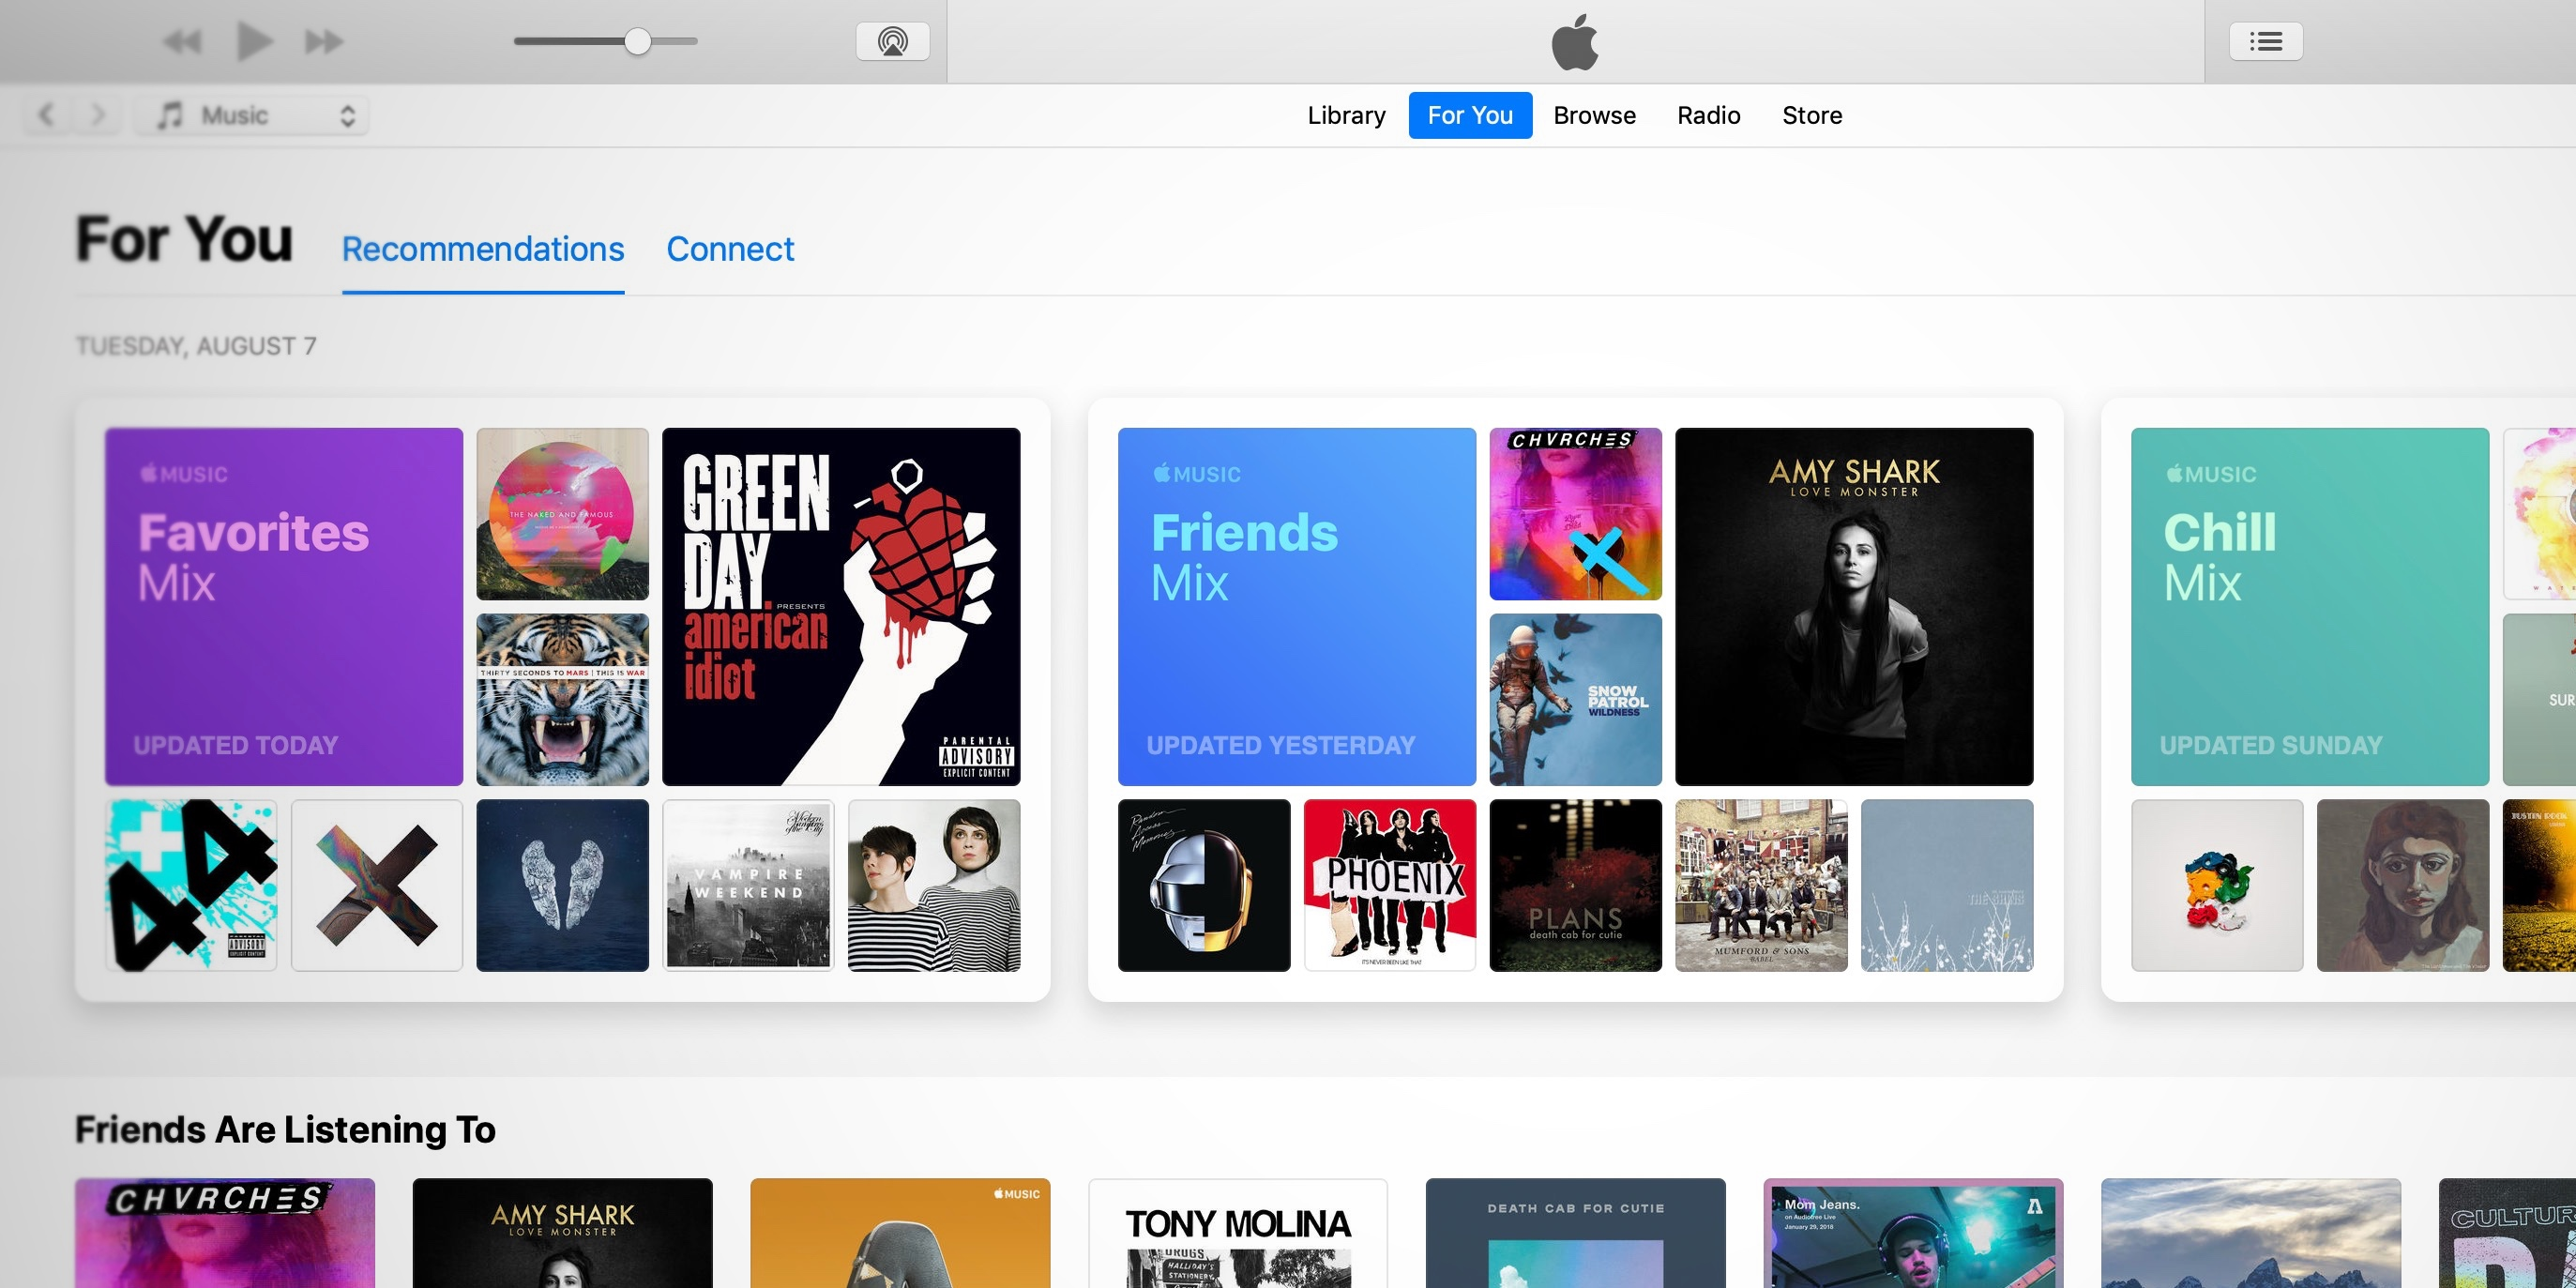 Apple Music launches new weekly 'Friends Mix' in For You